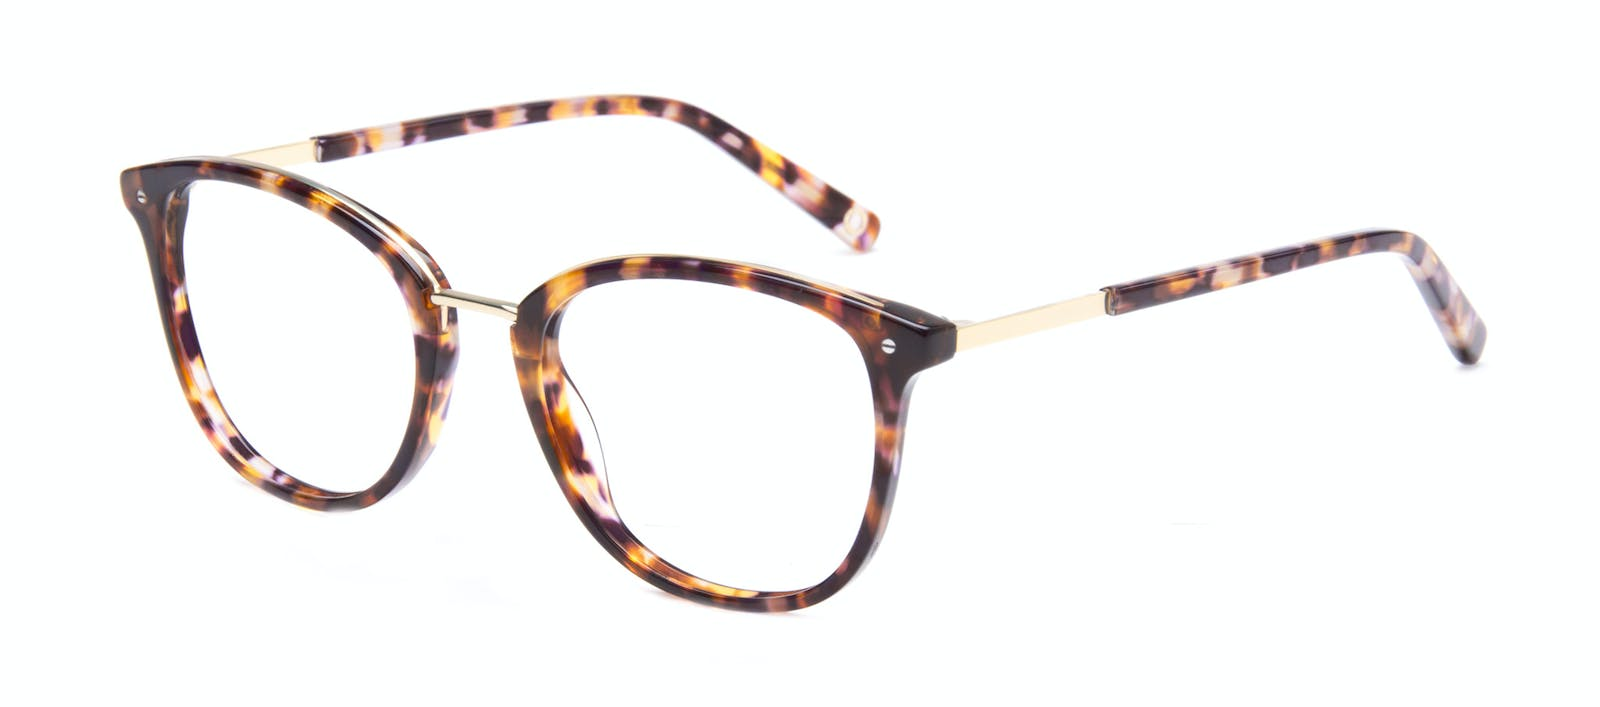 Women\'s Eyeglasses - Bella in Dark Tortoise | BonLook